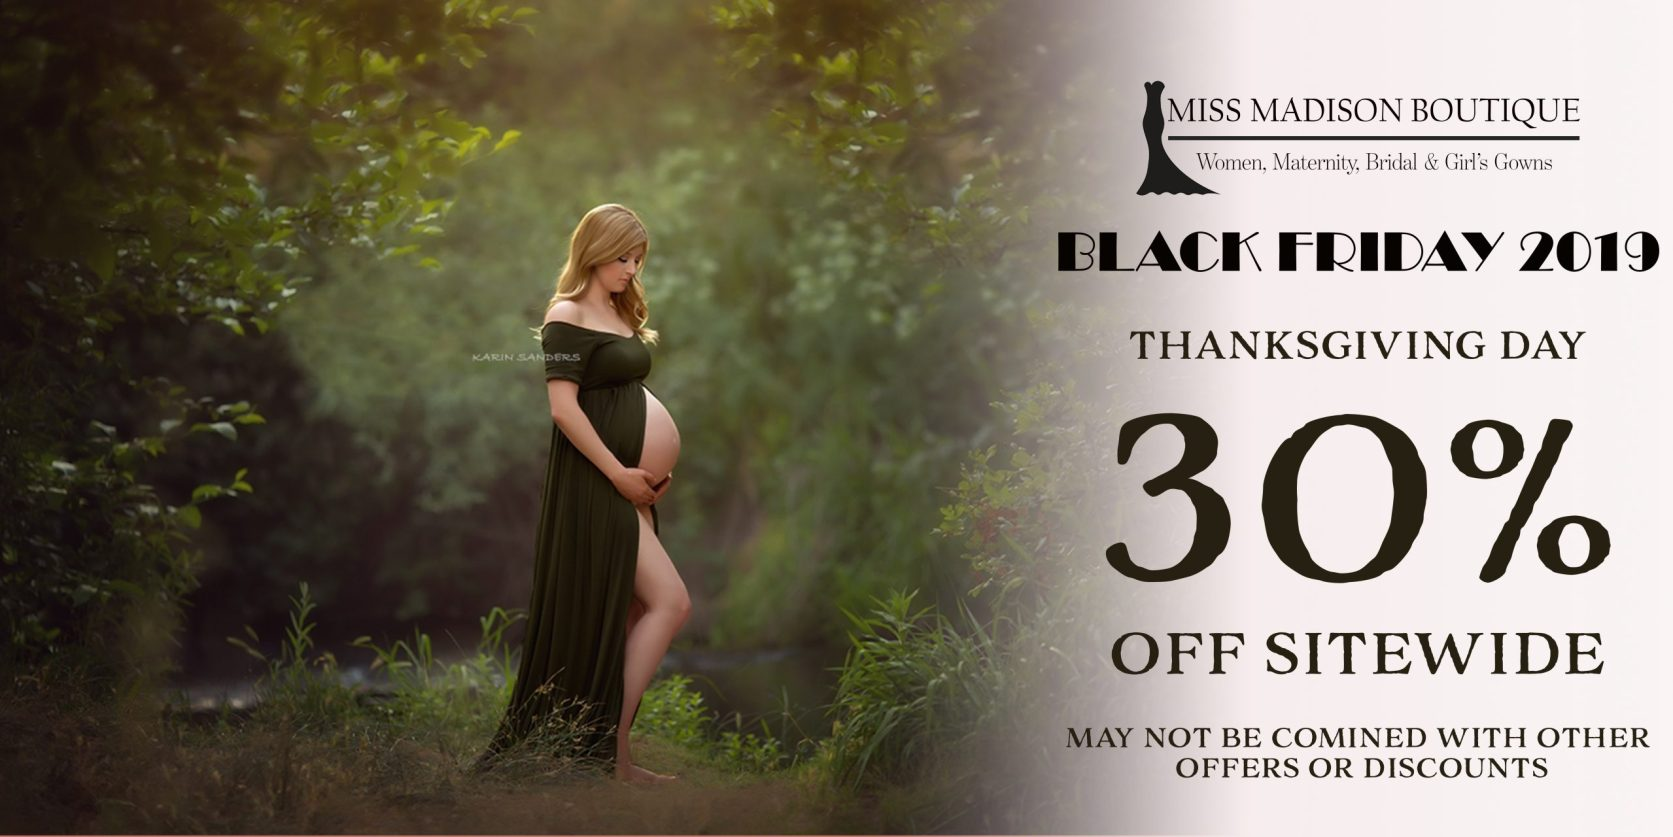 black friday, sale, thanksgiving day sale, maternity gown, maternity dress, photography, photoshoot, open belly, natural light photo shoot